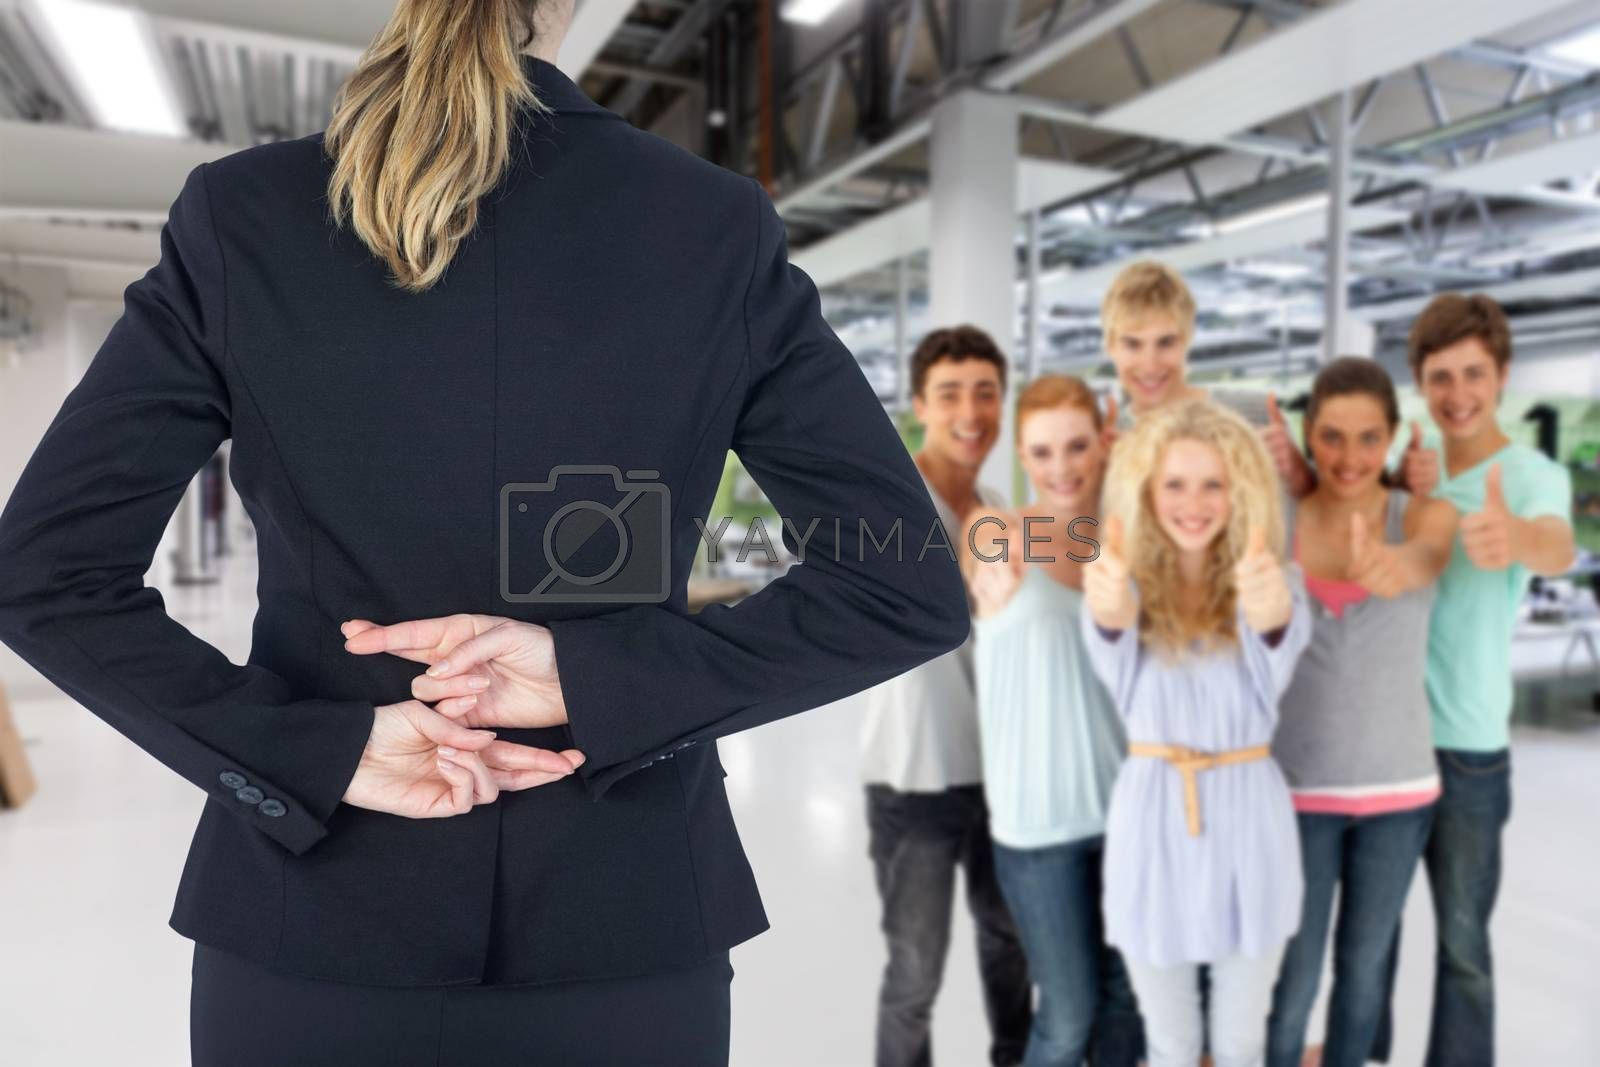 Rear view of businesswoman with fingers crossed behind her back against classroom